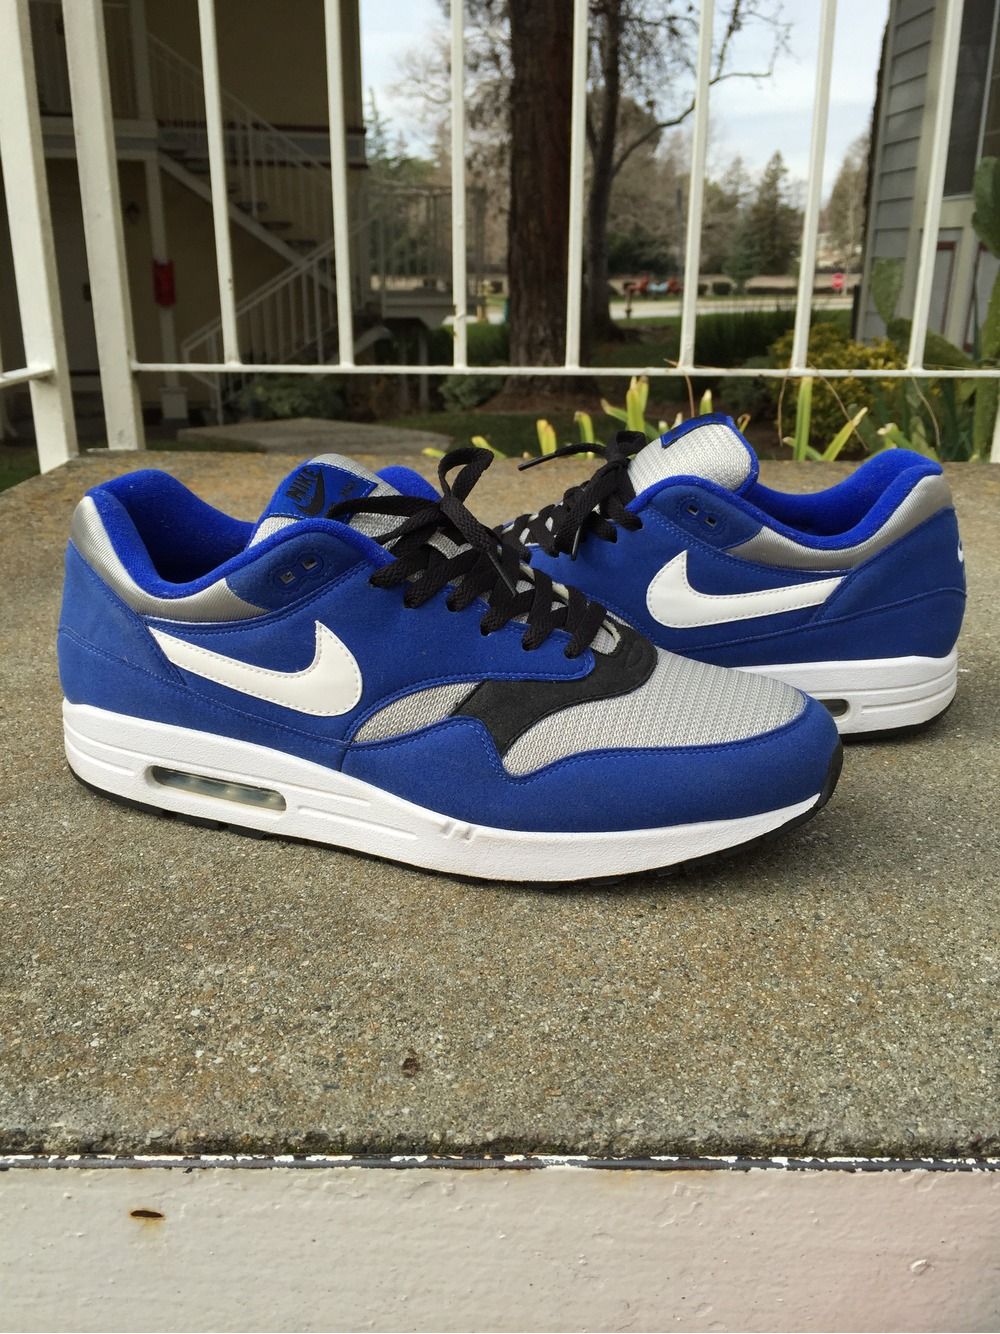 nike air max 1 id nike shox bleu saya. Black Bedroom Furniture Sets. Home Design Ideas